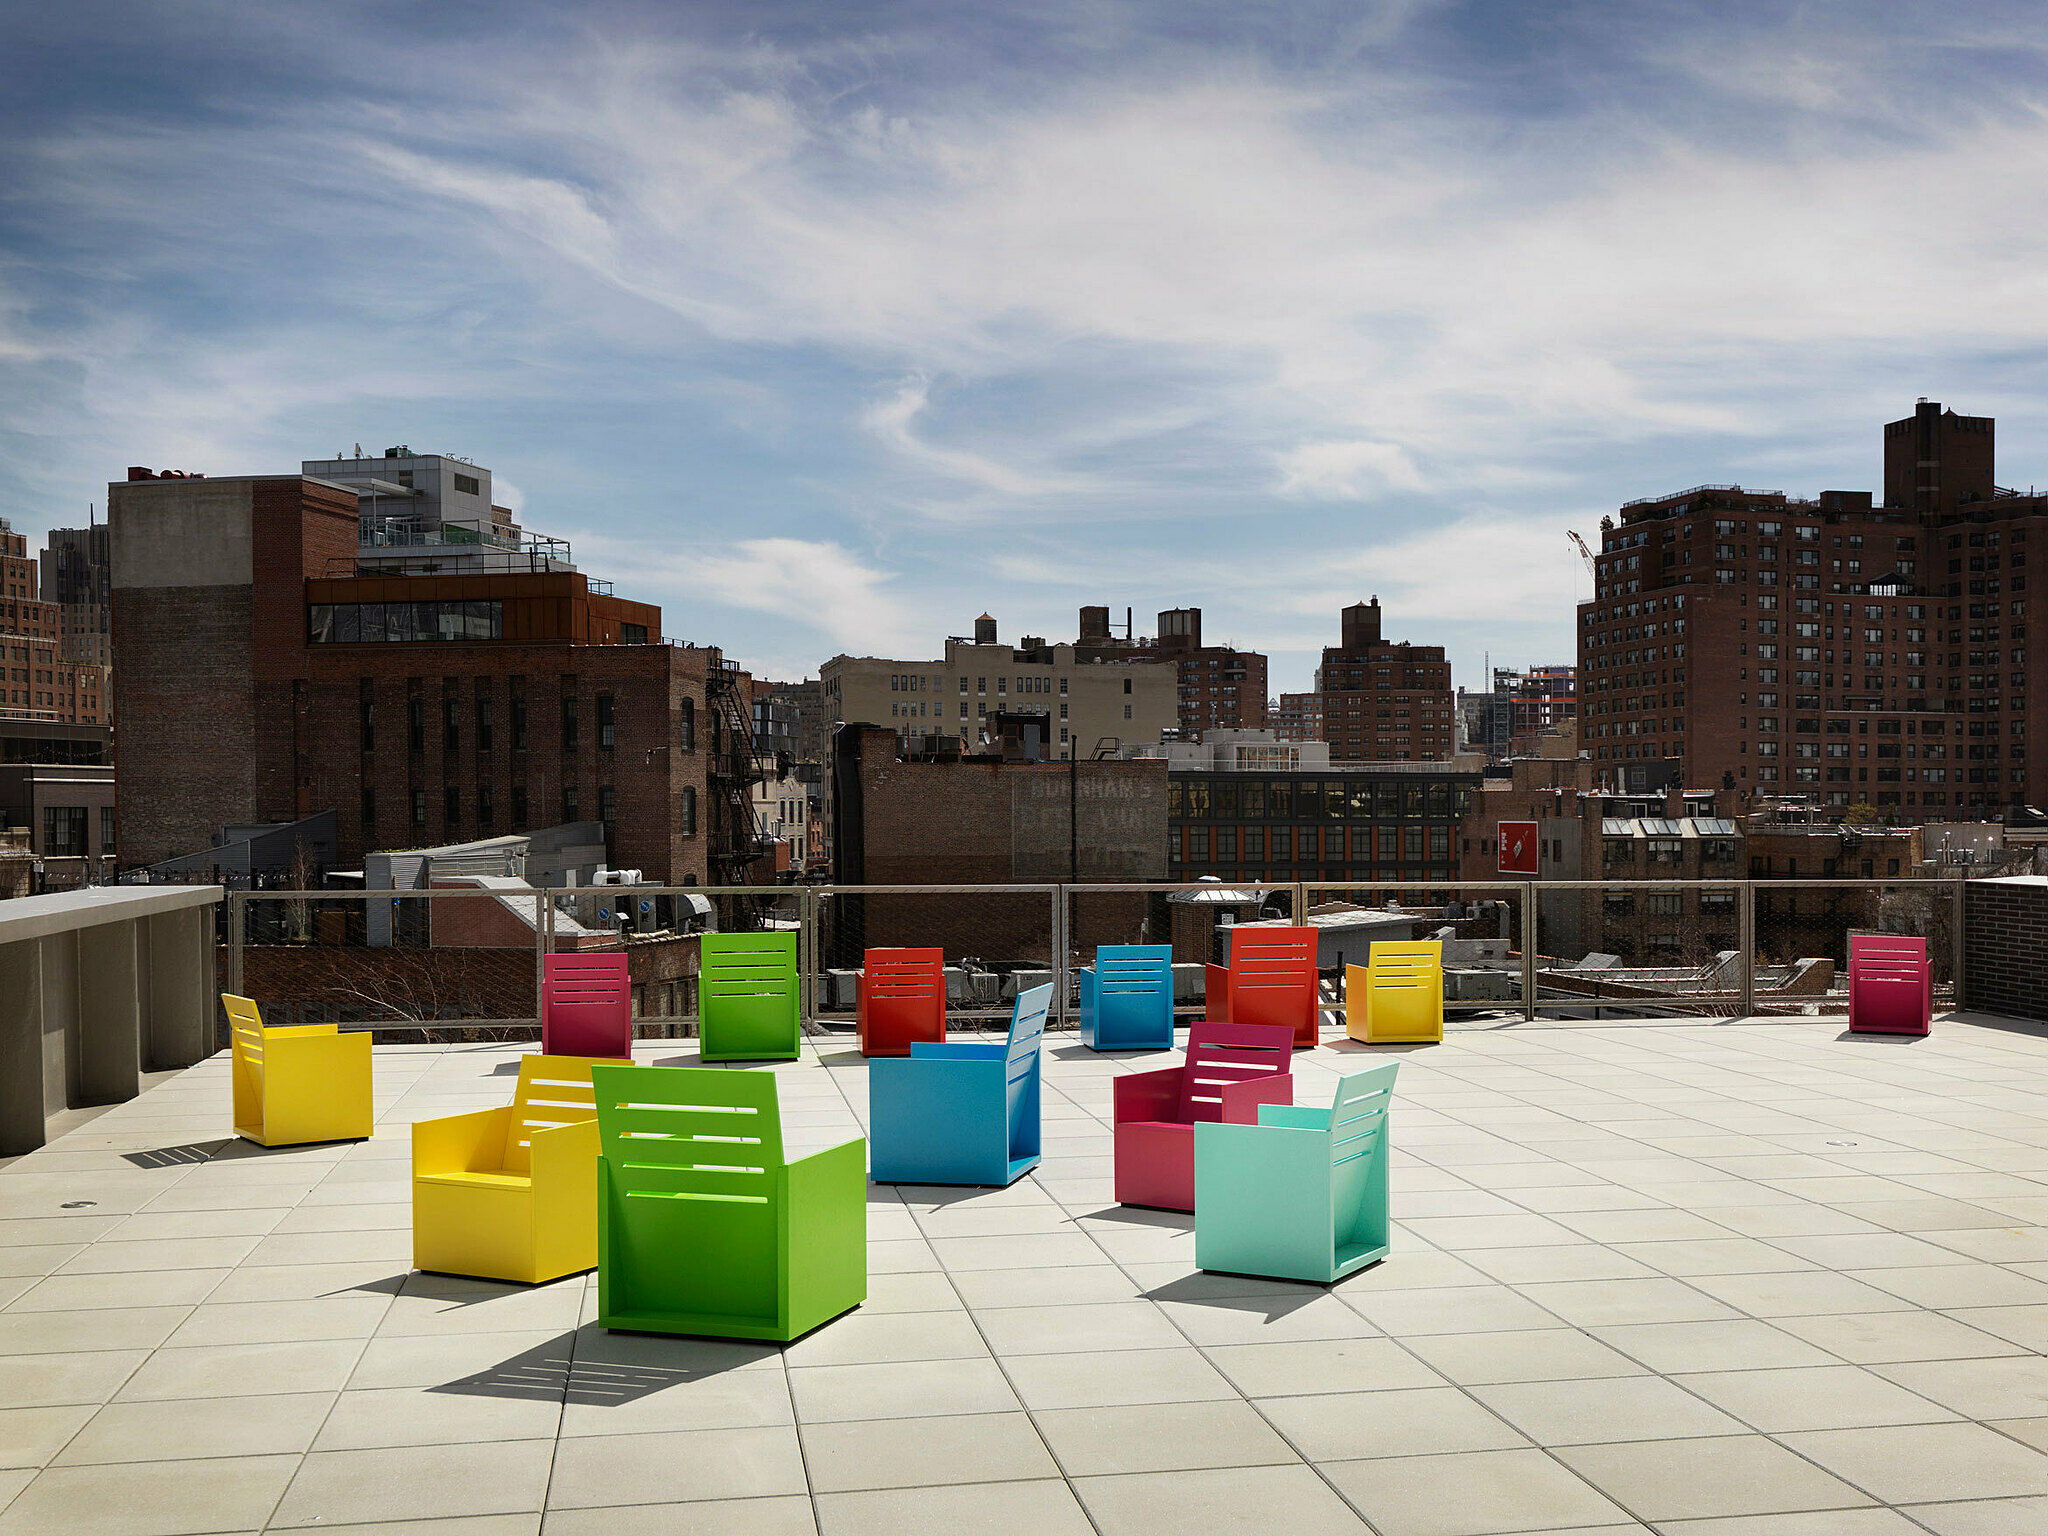 Mary Heilmann's installation on the terrace. Colorful, blocky chairs are clustered in loose groups.